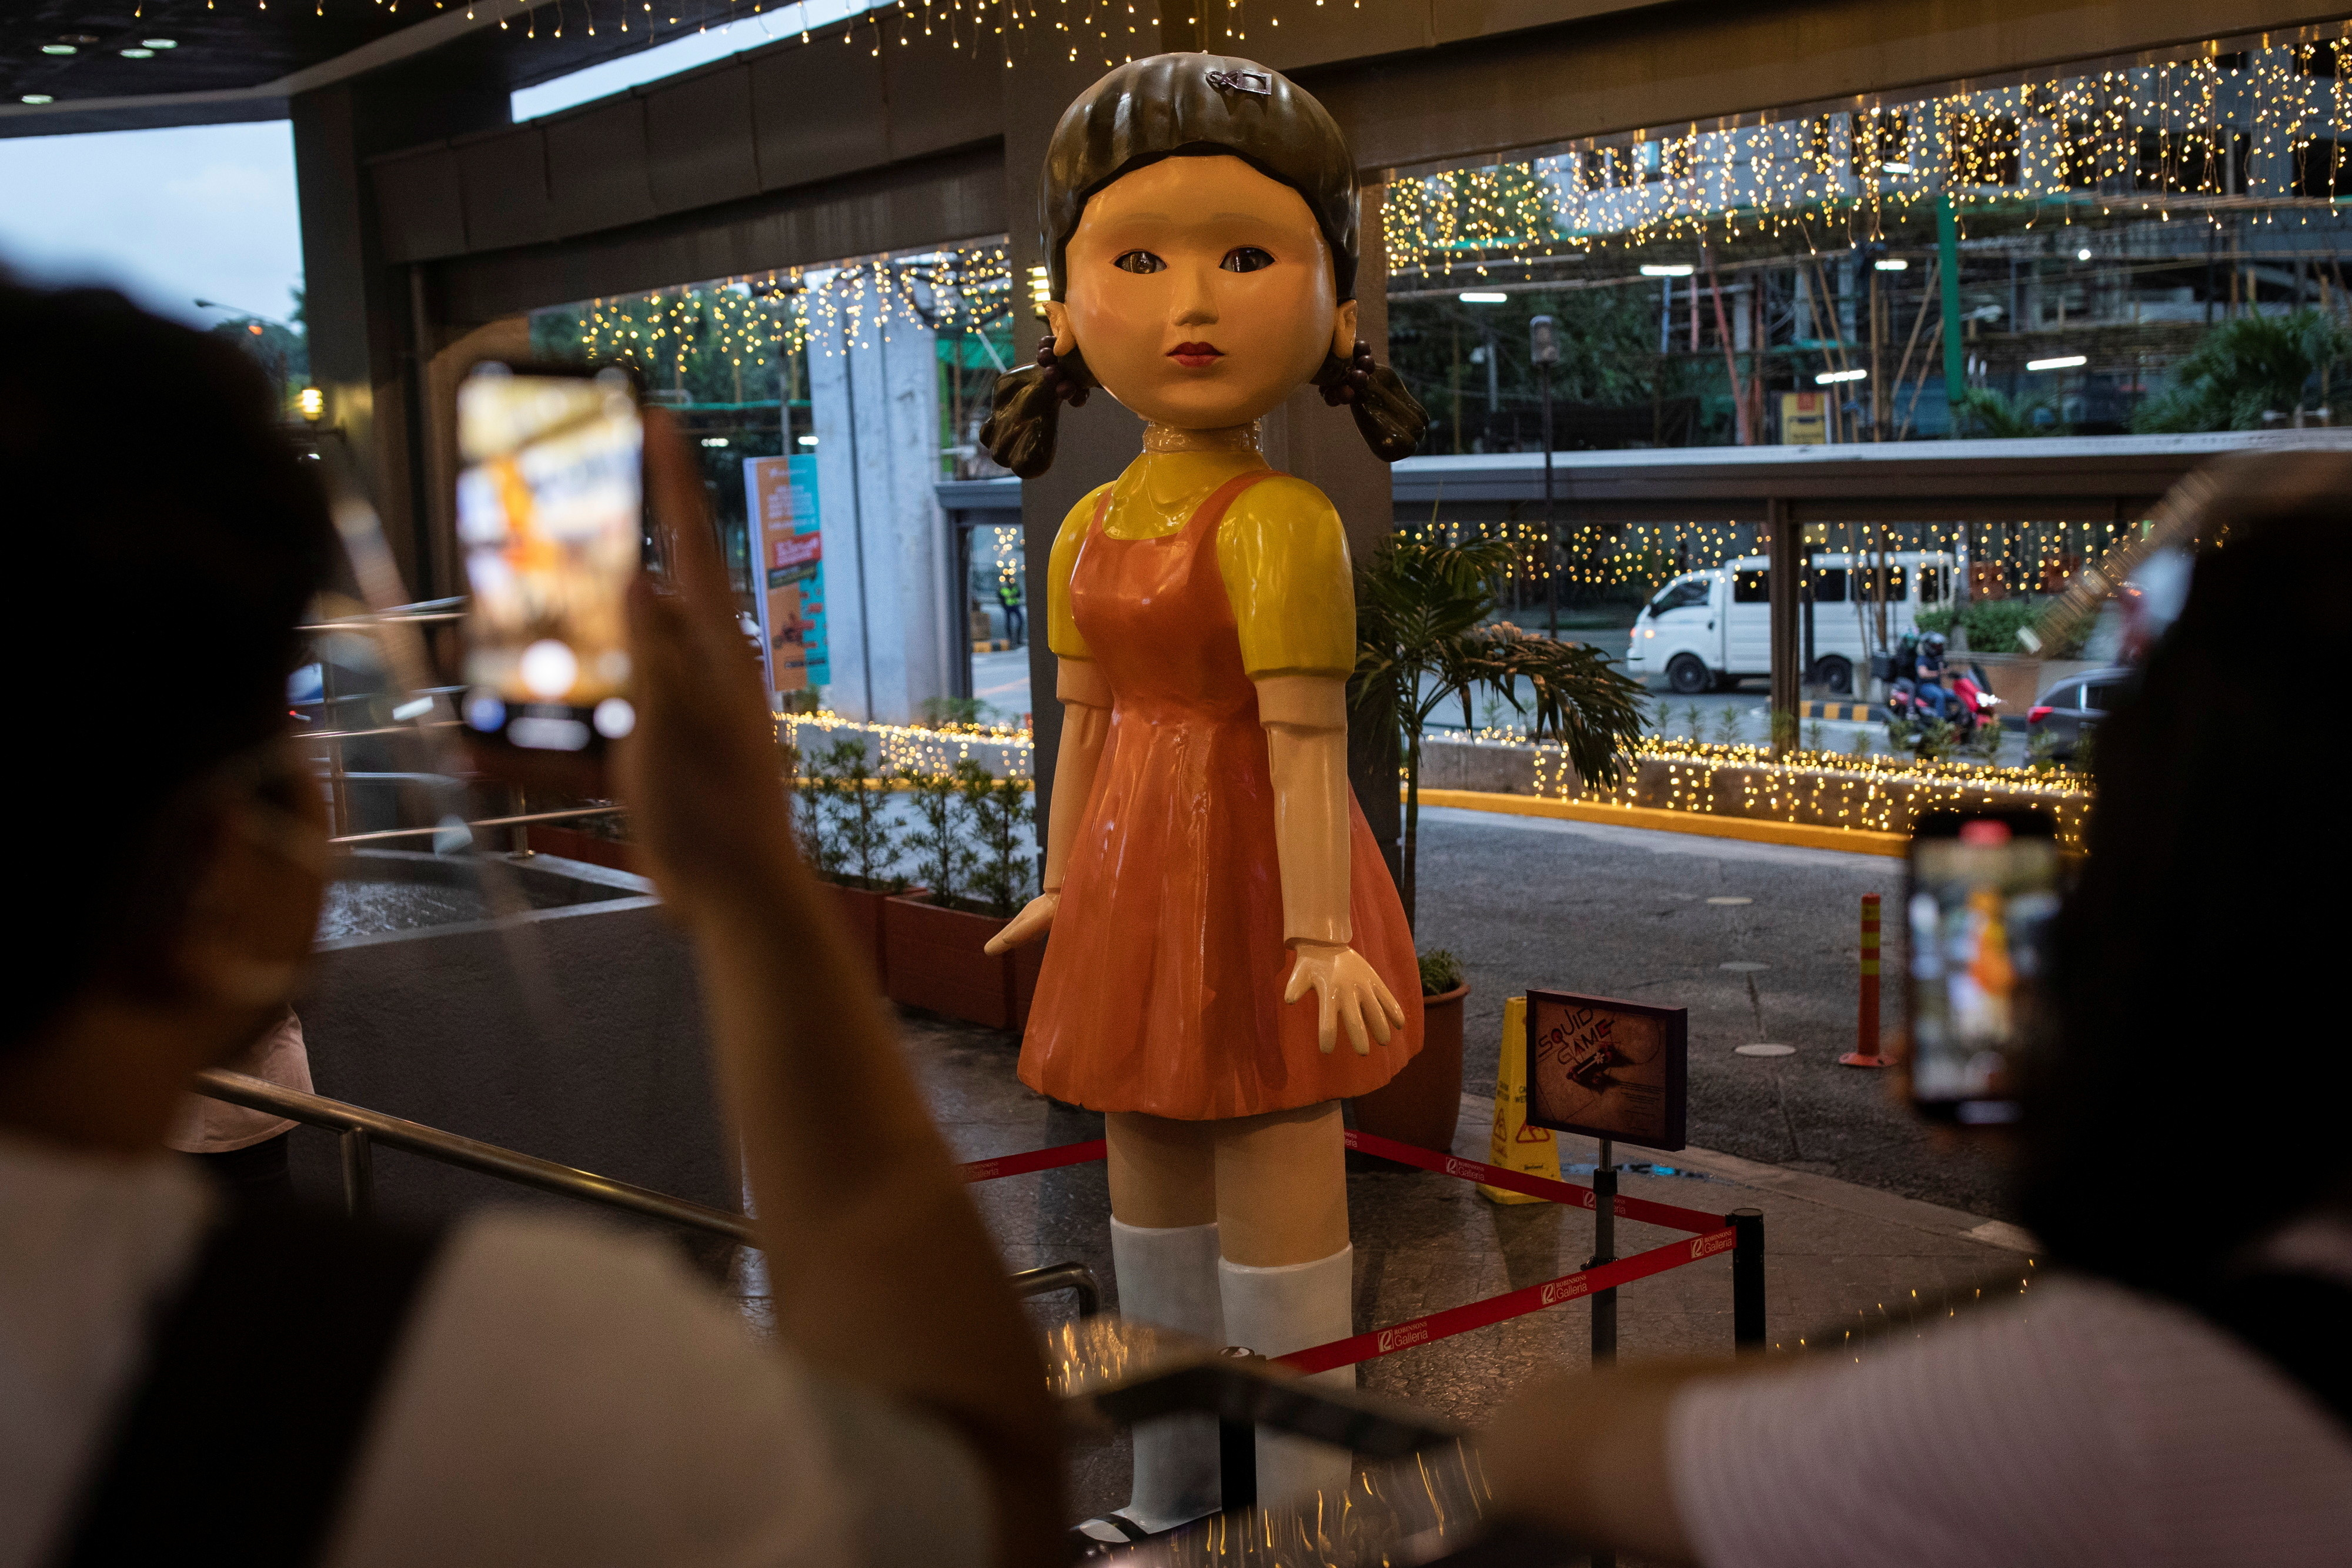 """People take pictures of the 3-metre (10 ft) tall doll from Netflix series """"Squid Game"""" displayed outside a mall in Quezon City, Philippines"""